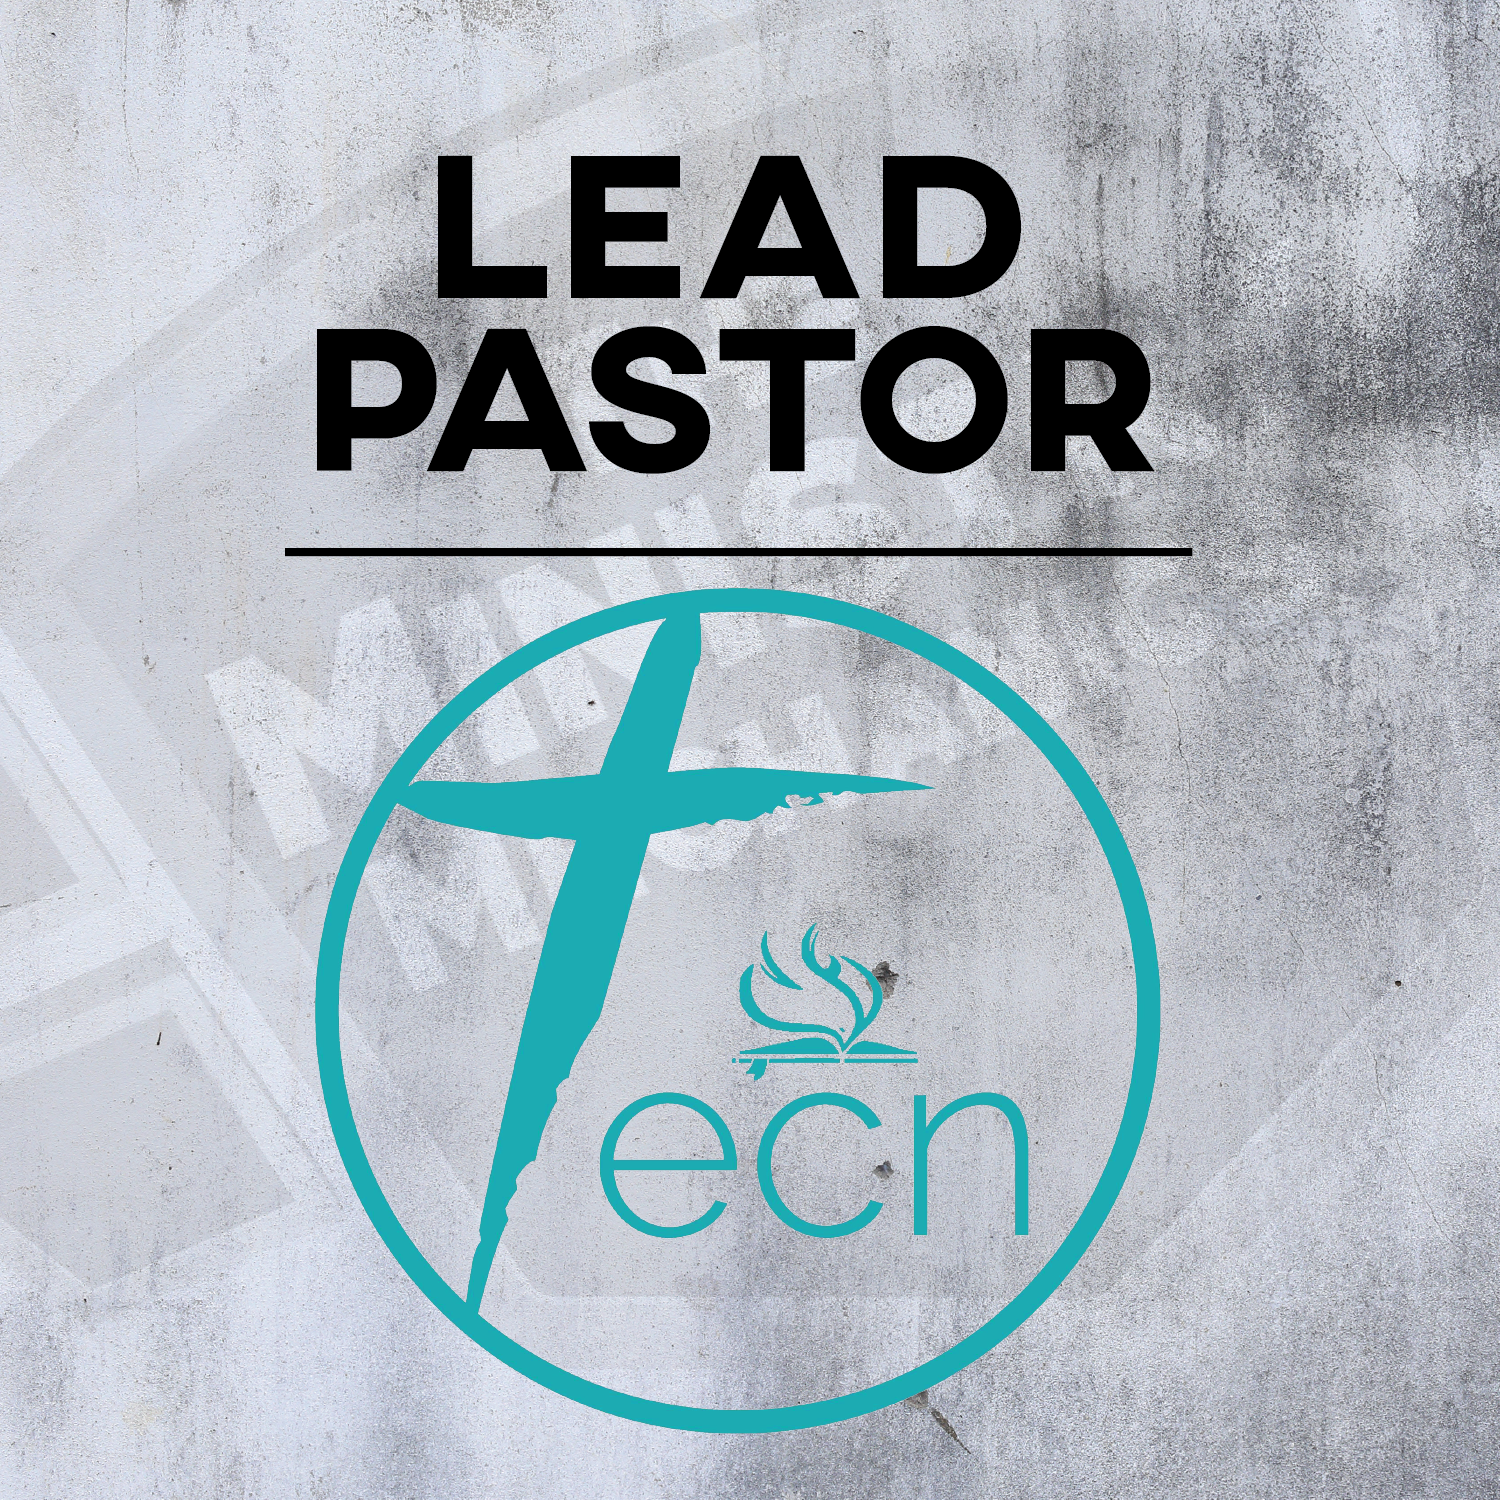 Excel Lead Pastor Job Posting Graphics-01.png